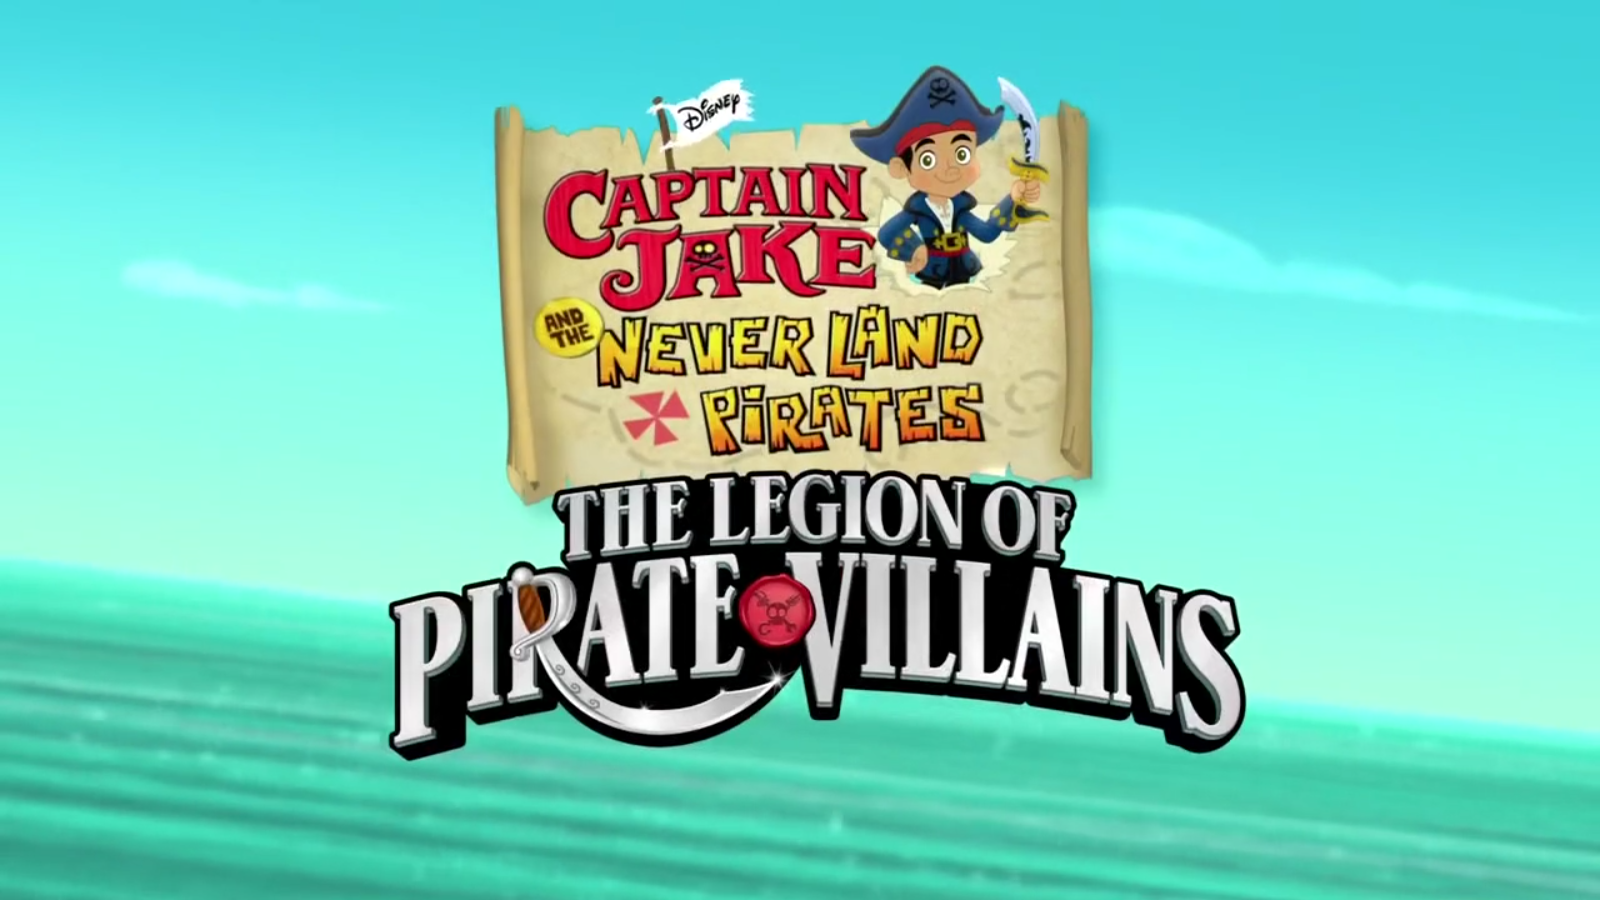 Captain Jake and the Never Land Pirates: The Legion of Pirate Villains